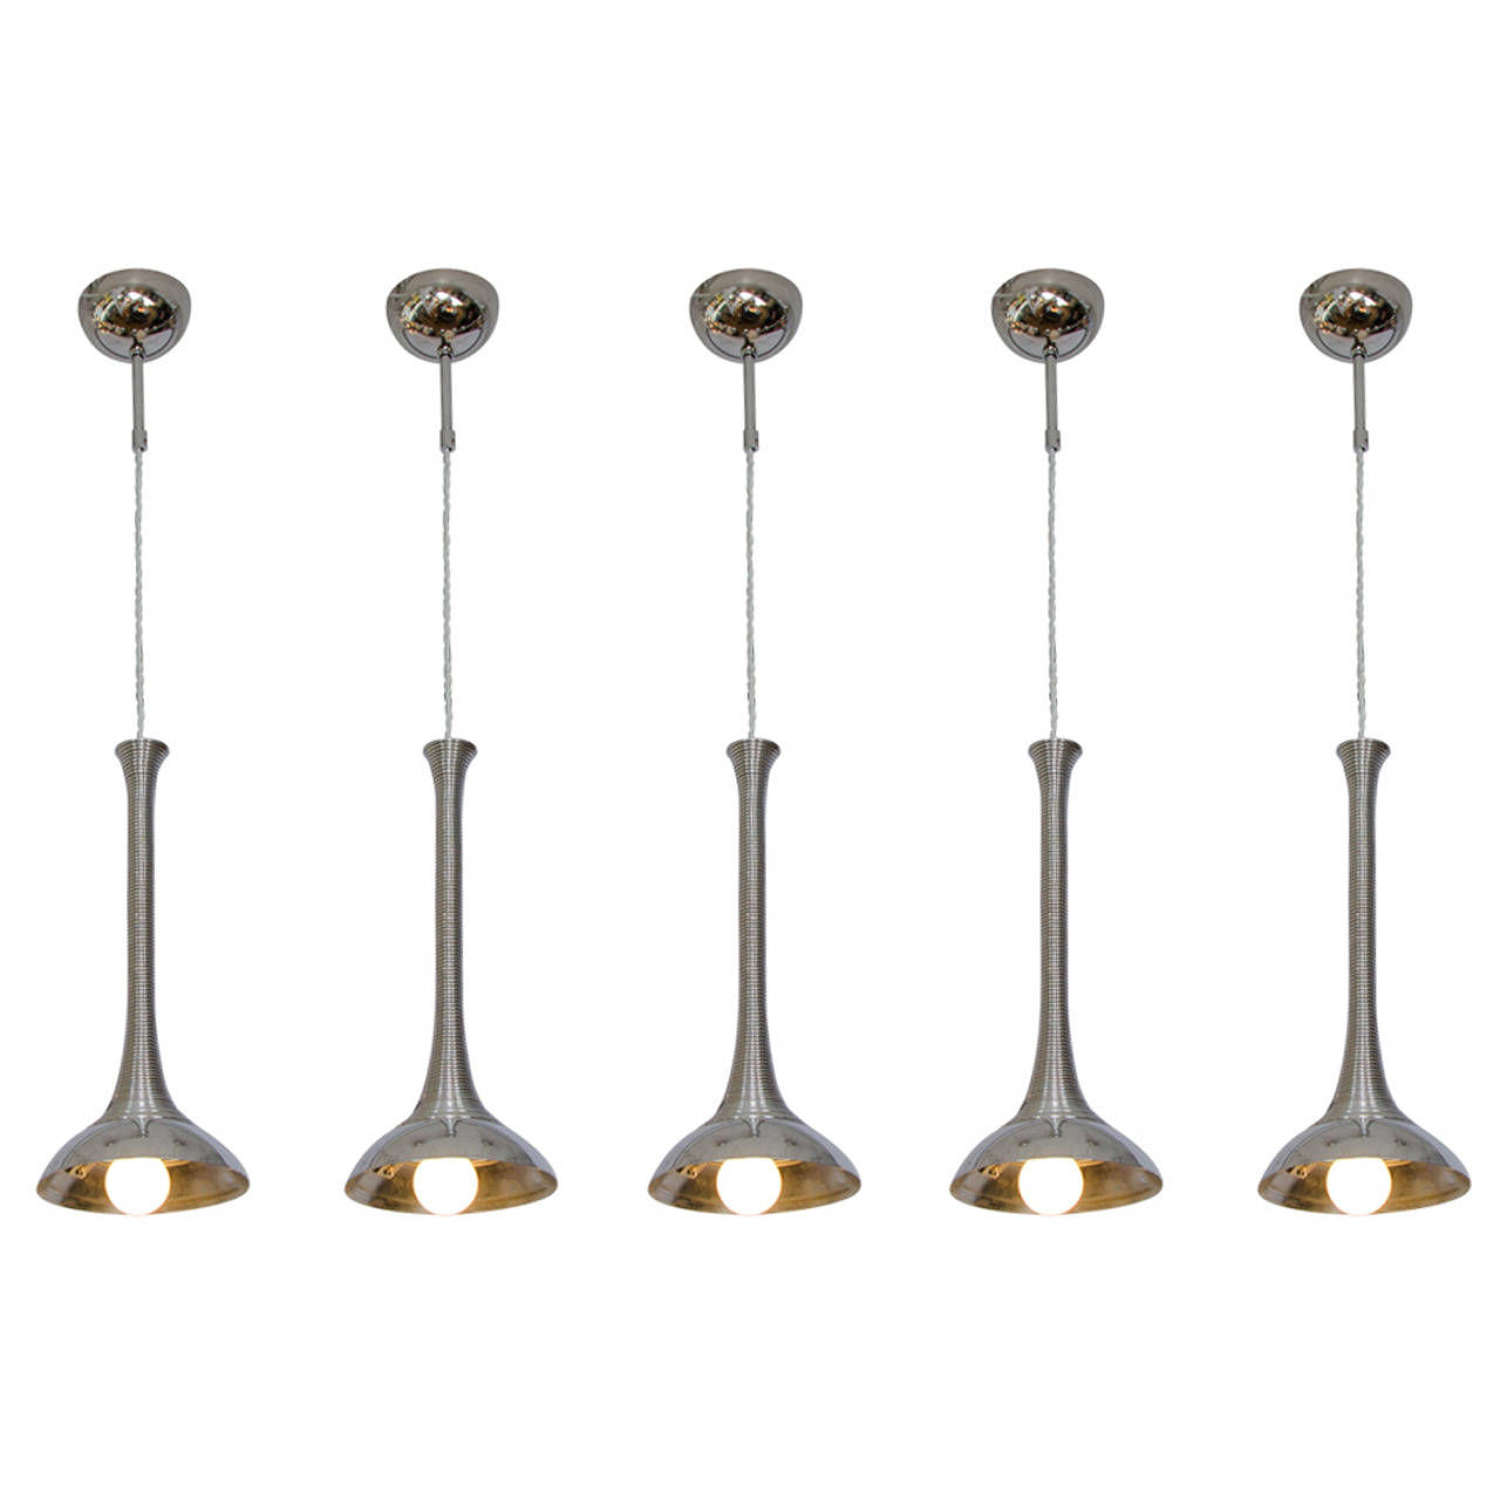 Chrome Lamps in the Style of Angelo Mangiarotti 1960's